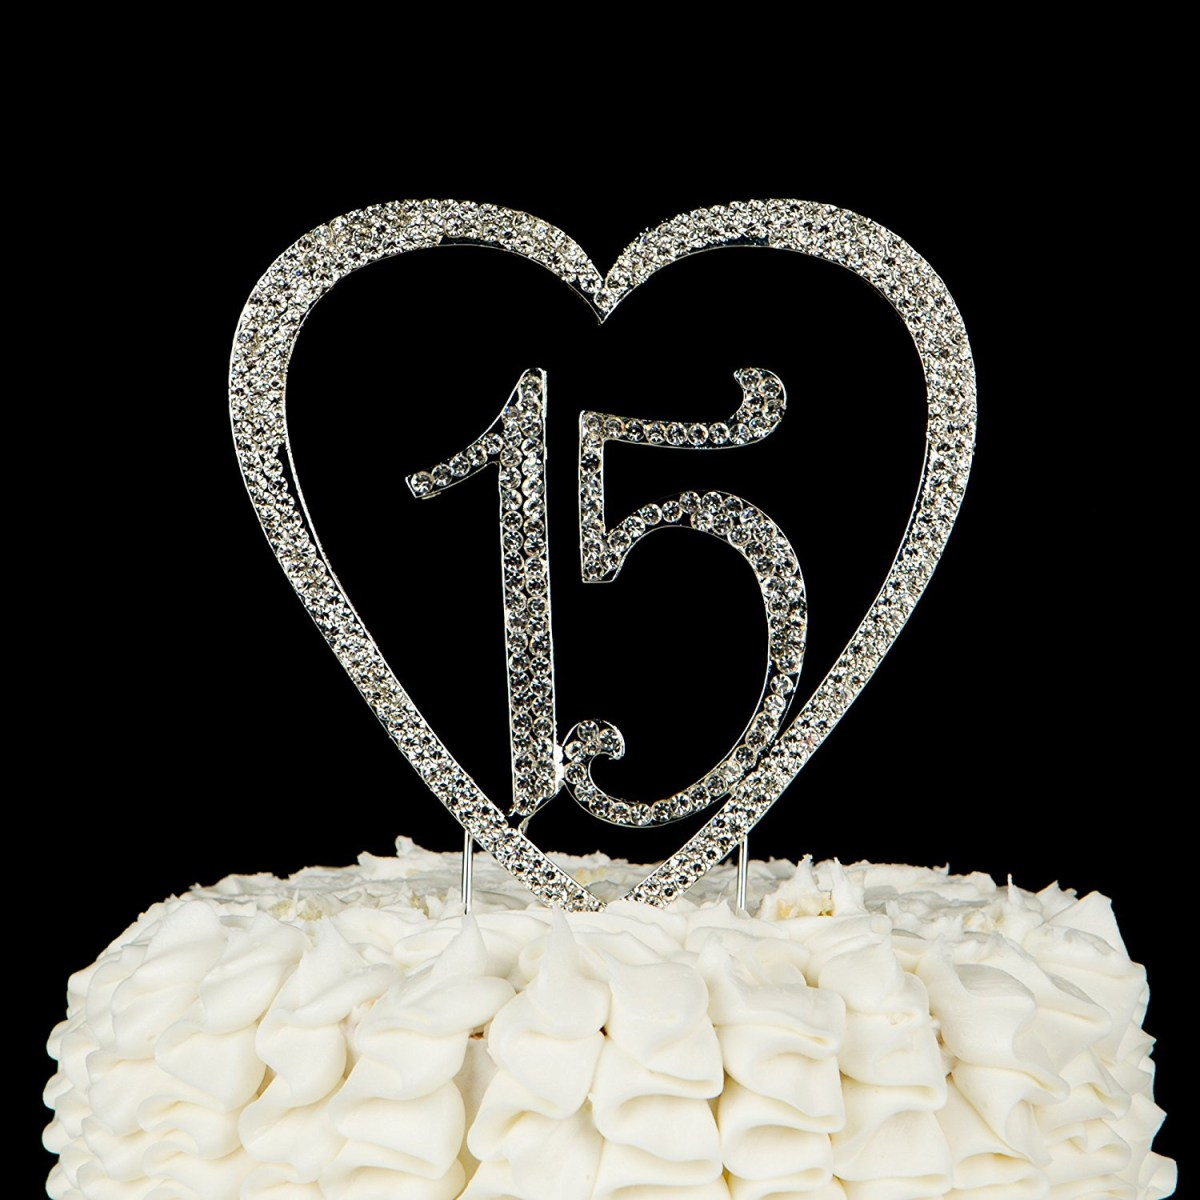 Remarkable 15 Birthday Cakes 15 Heart Cake Topper Gold 15Th Birthday Party Birthday Cards Printable Riciscafe Filternl